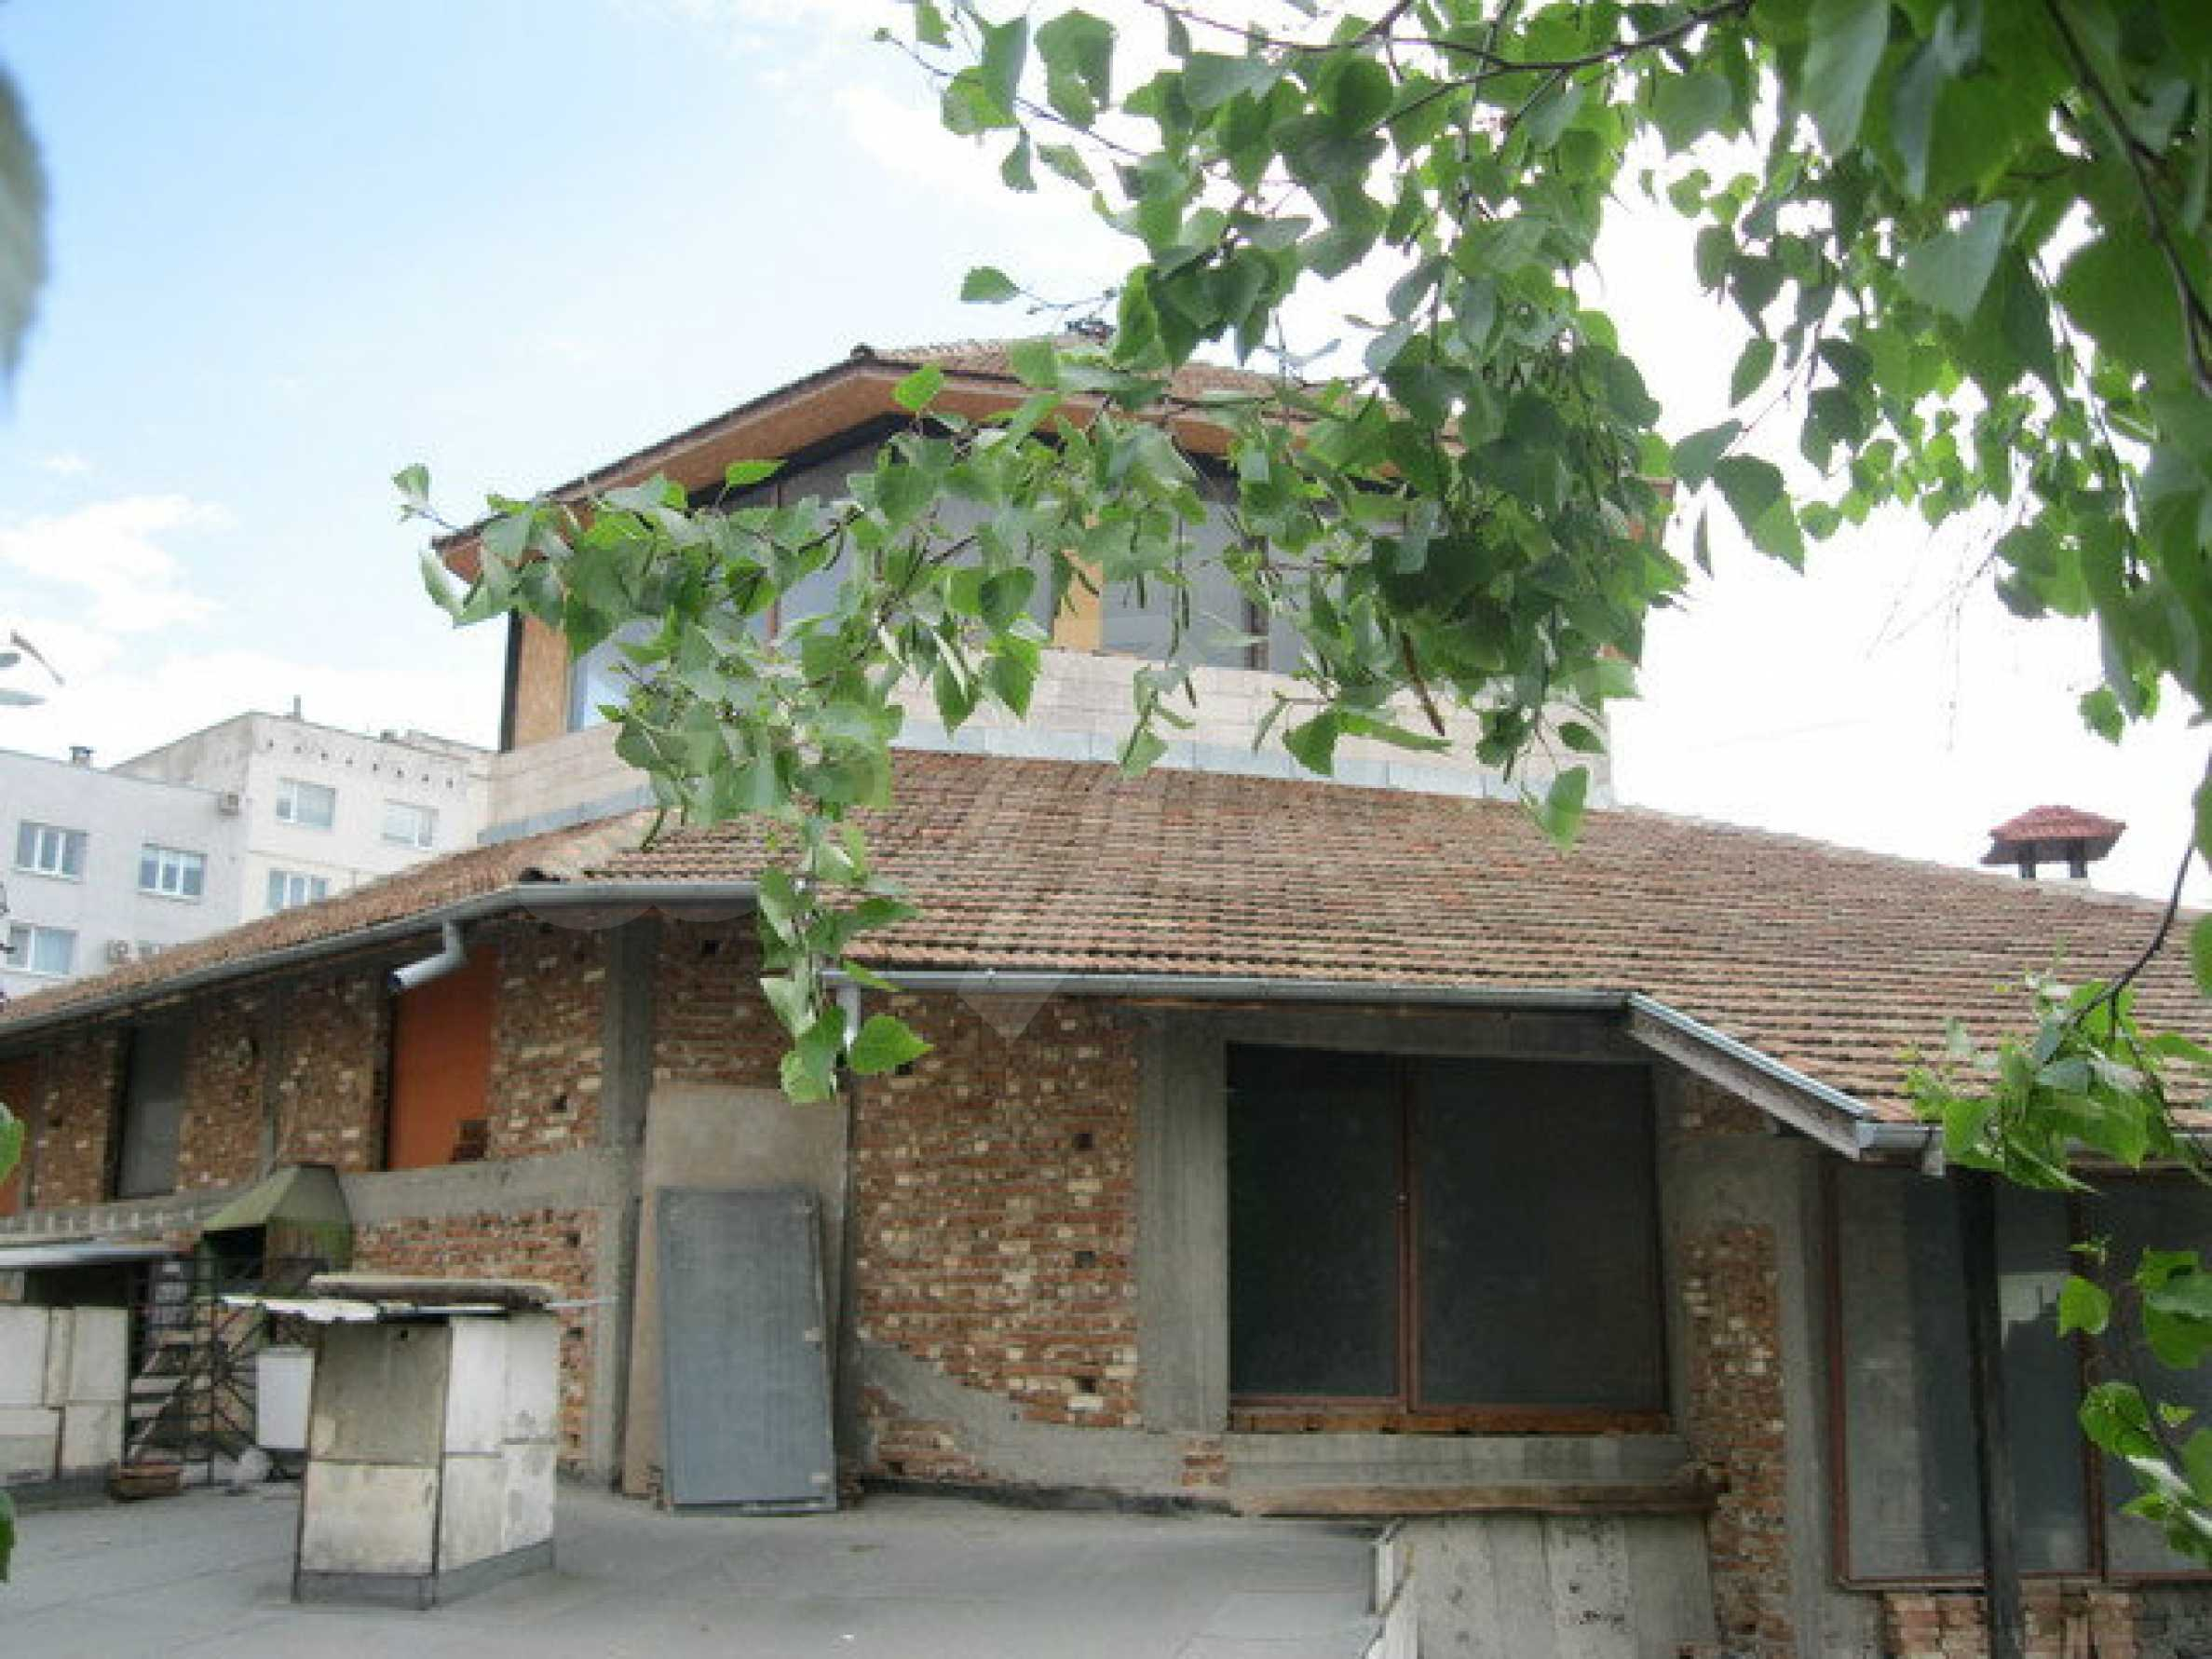 Commercial property on 3 levels for sale in Veliko Tarnovo  9